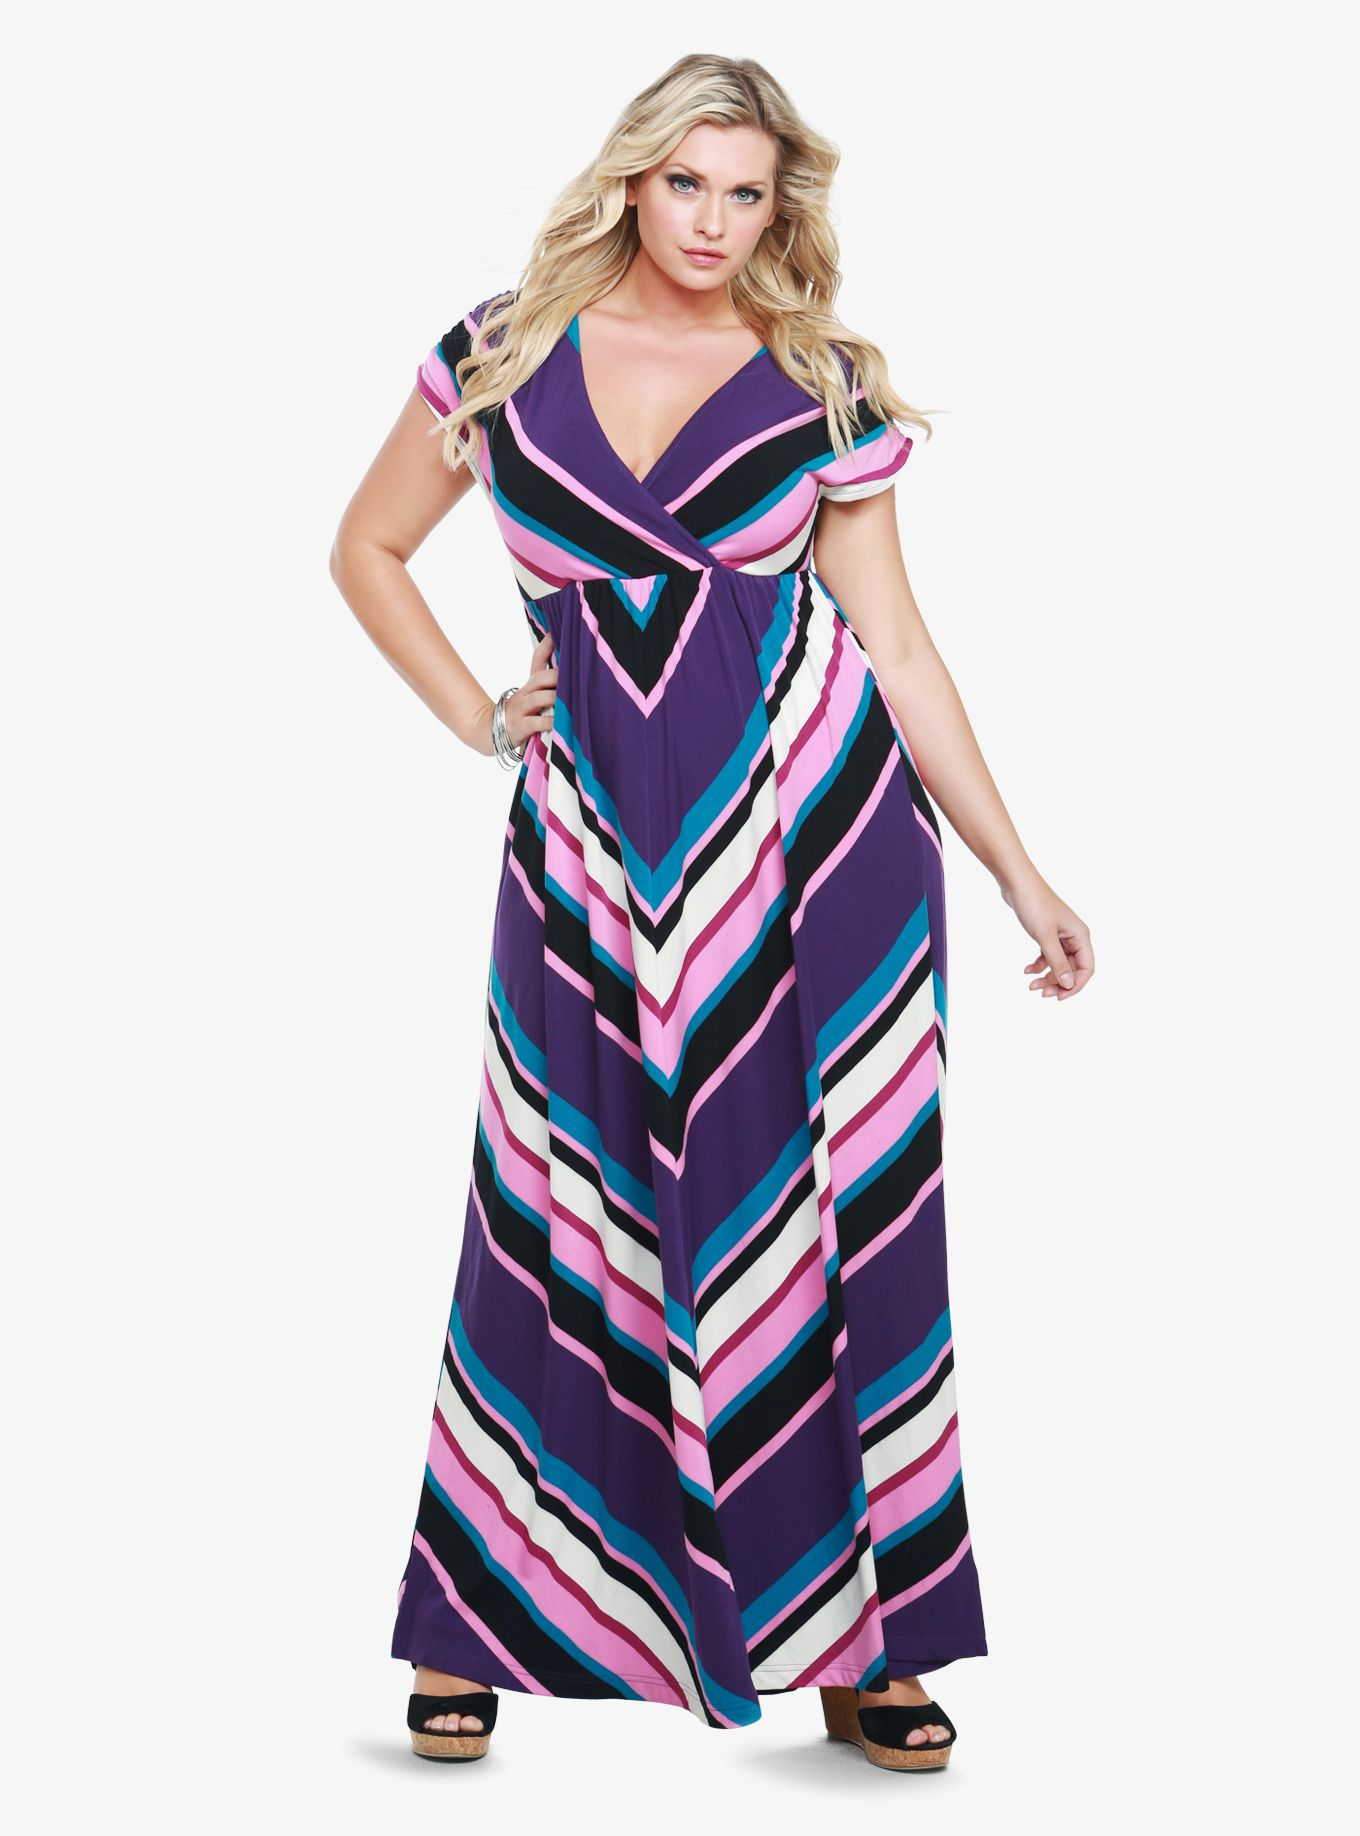 19273925816 Torrid.com - The Destination for Trendy Plus-size Fashion and Accessories  and thus one too!